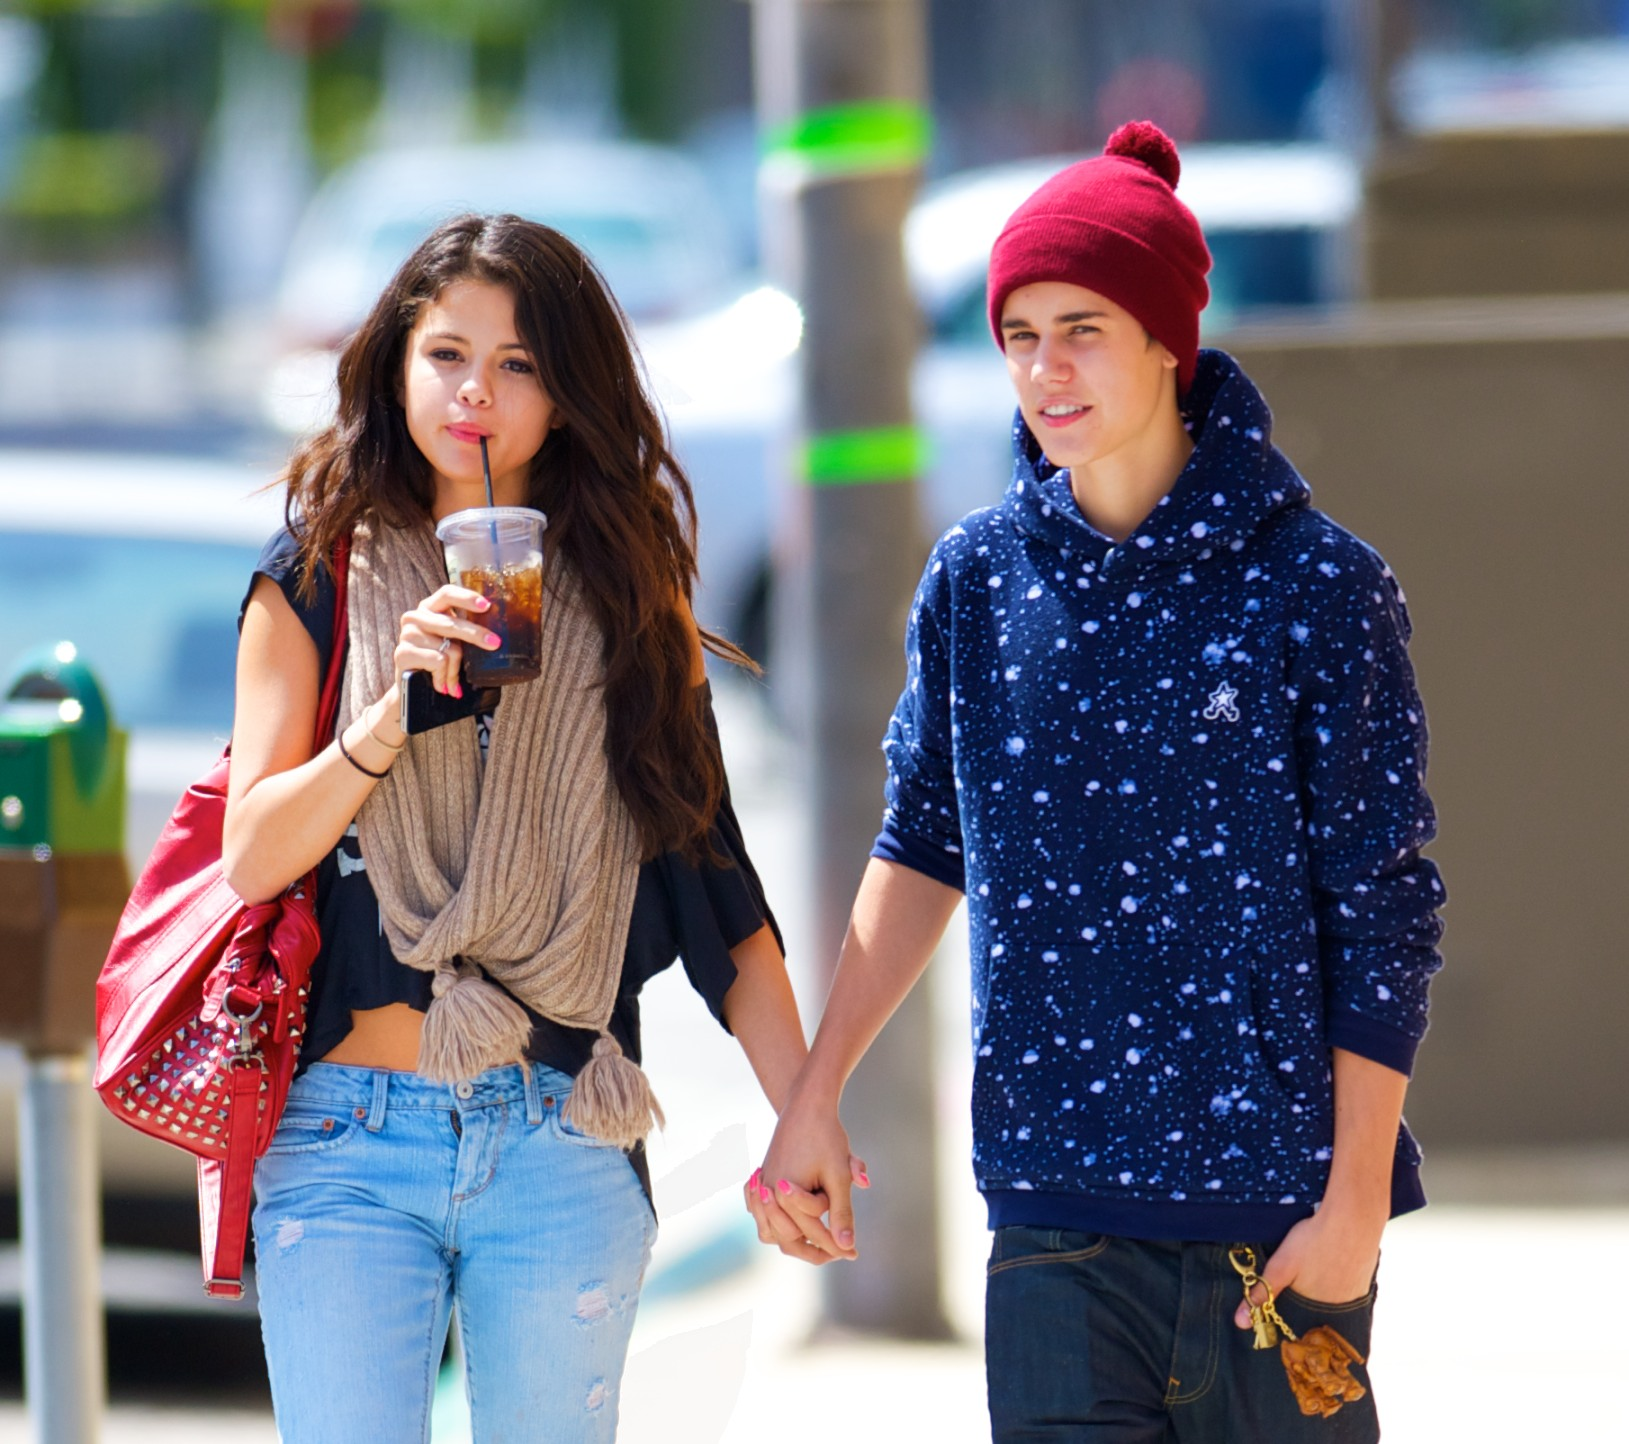 ©NATIONAL PHOTO GROUP Justin Bieber and Selena Gomez grab a quick lunch at Panera Bread. They were seen walking out hand and hand. Job: 040512F1 Non-Exclusive April 5th, 2011 Los Angeles, California NPG.com